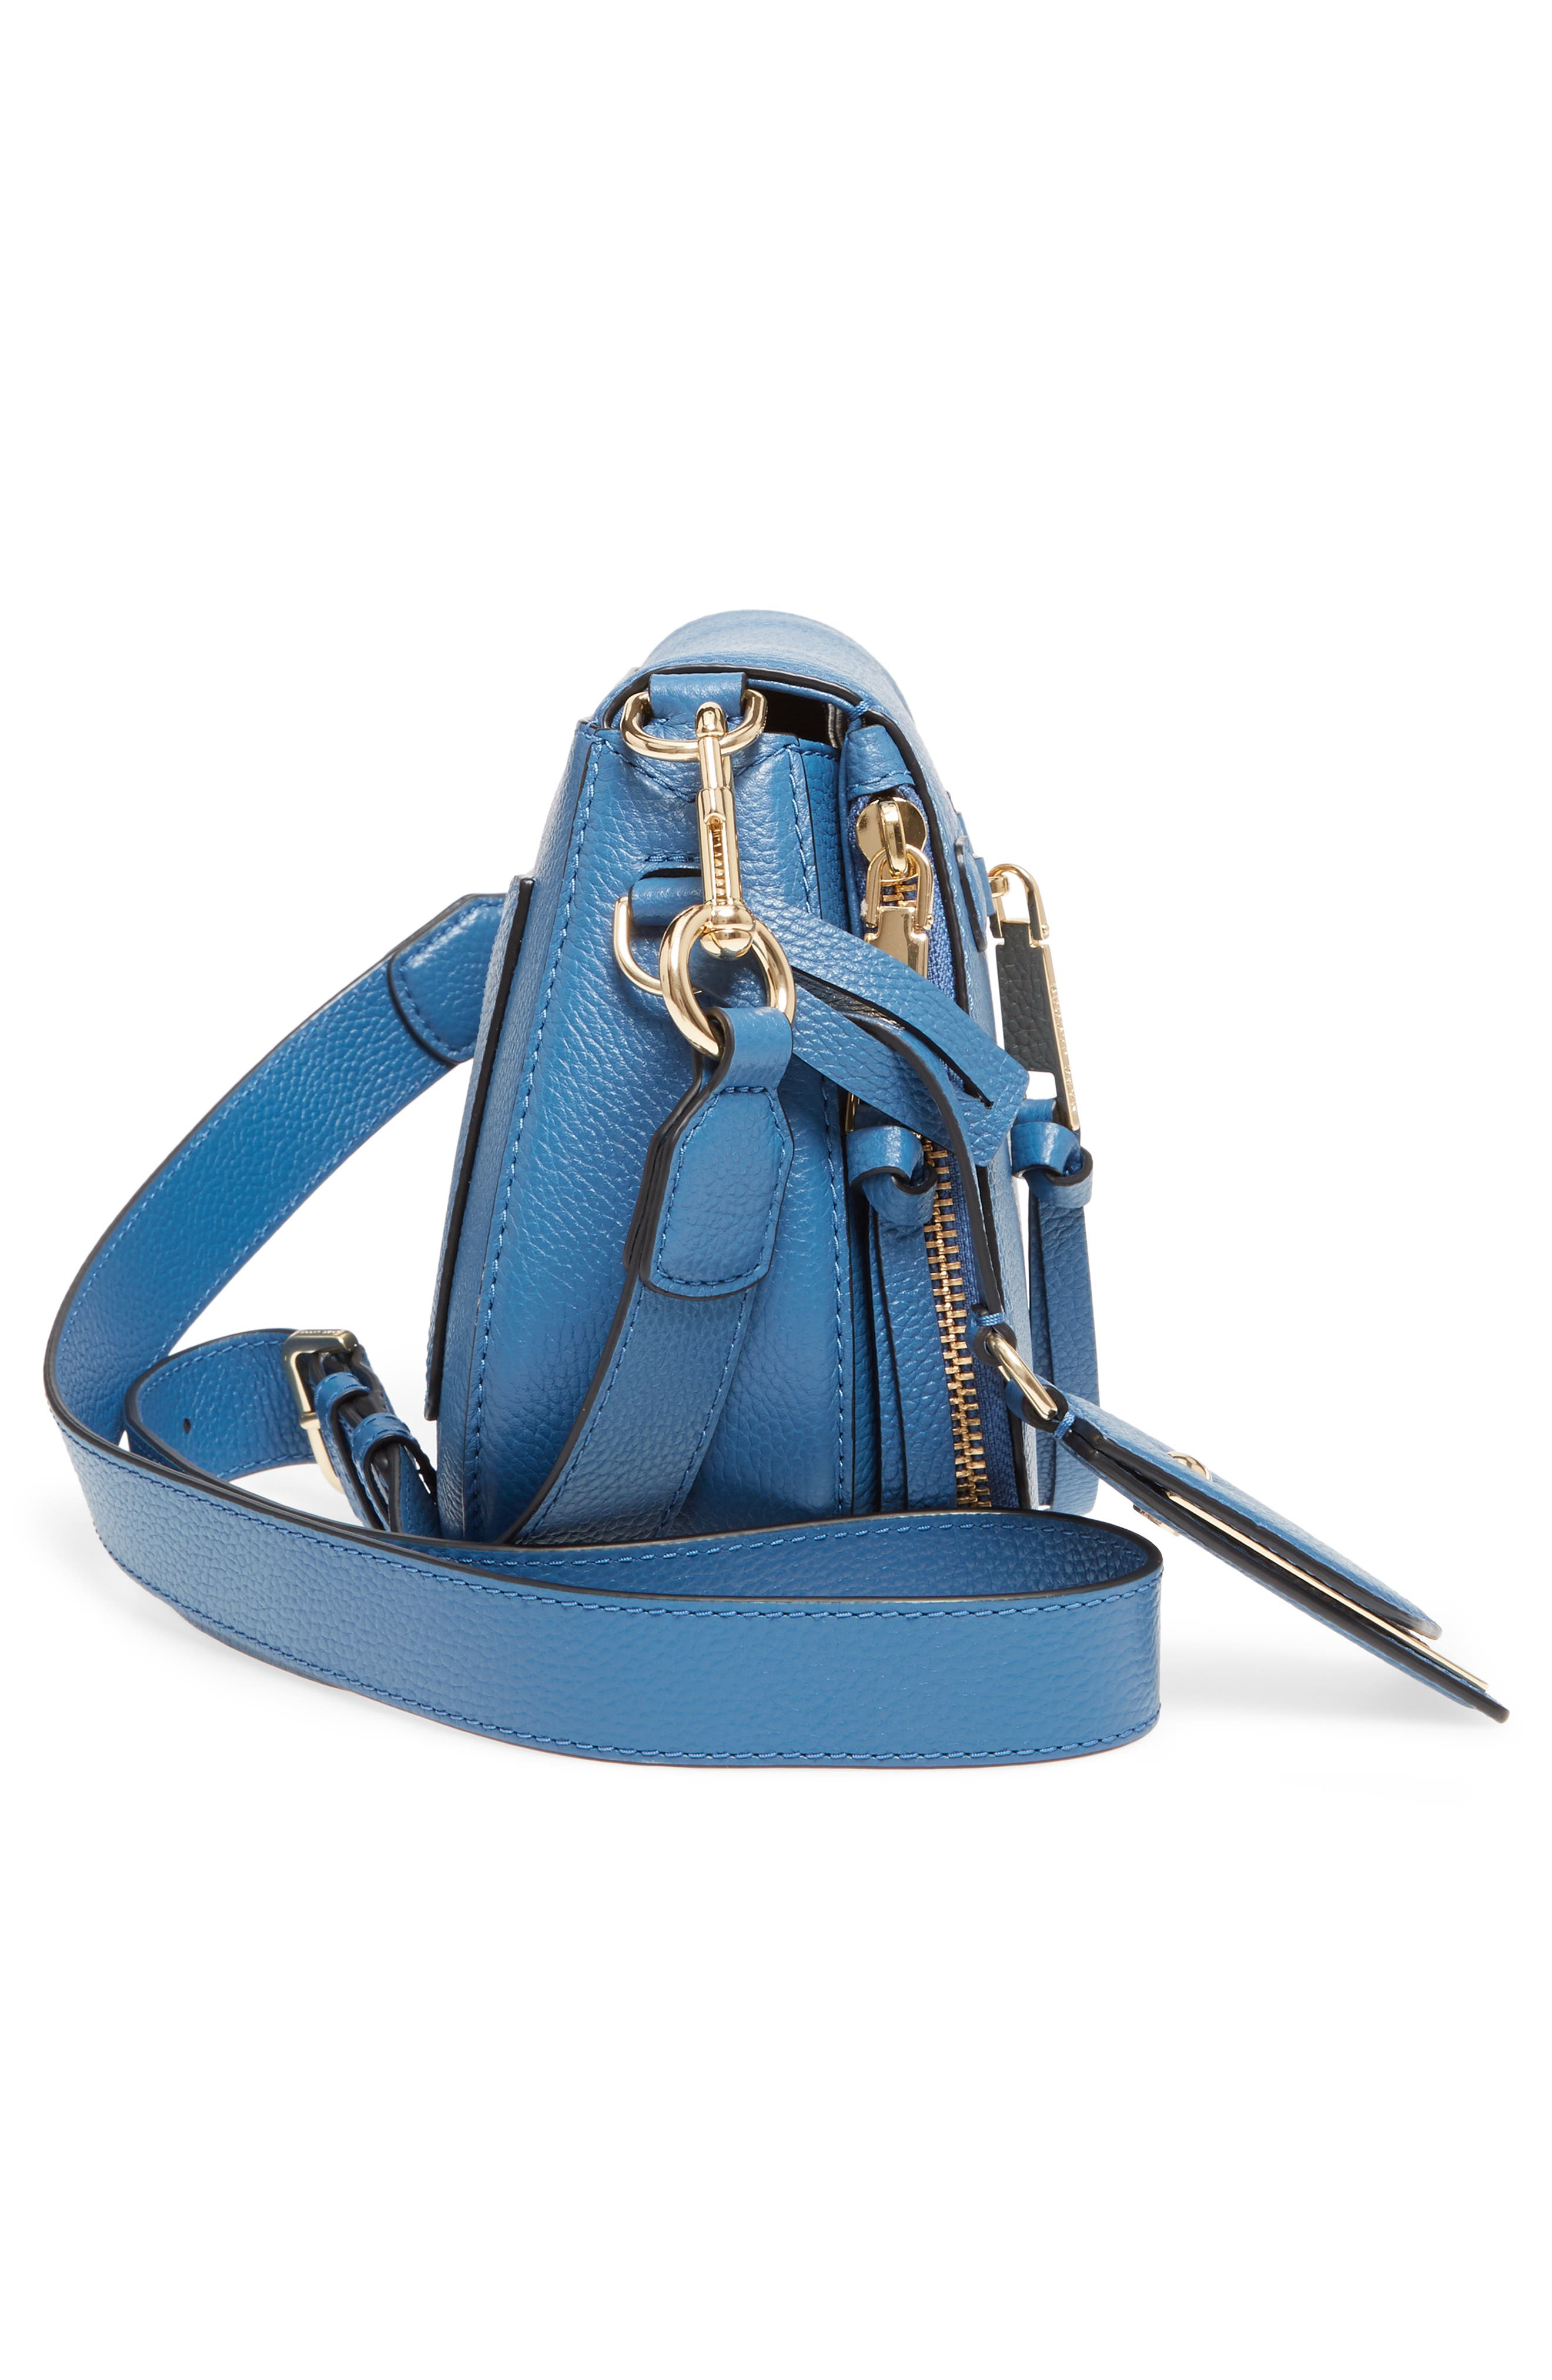 Small Recruit Nomad Pebbled Leather Crossbody Bag,                             Alternate thumbnail 57, color,